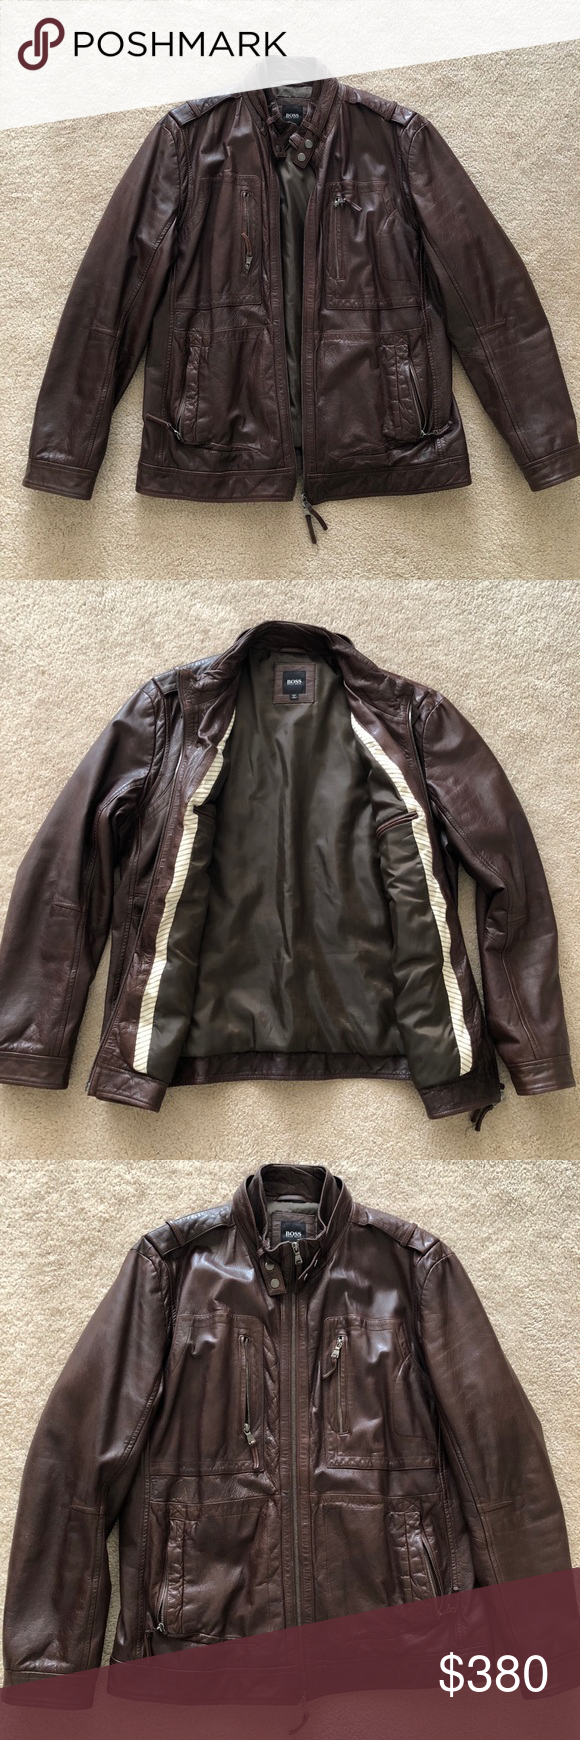 Hugo Boss Sheepskin Leather Motorcycle Jacket L Absolutely